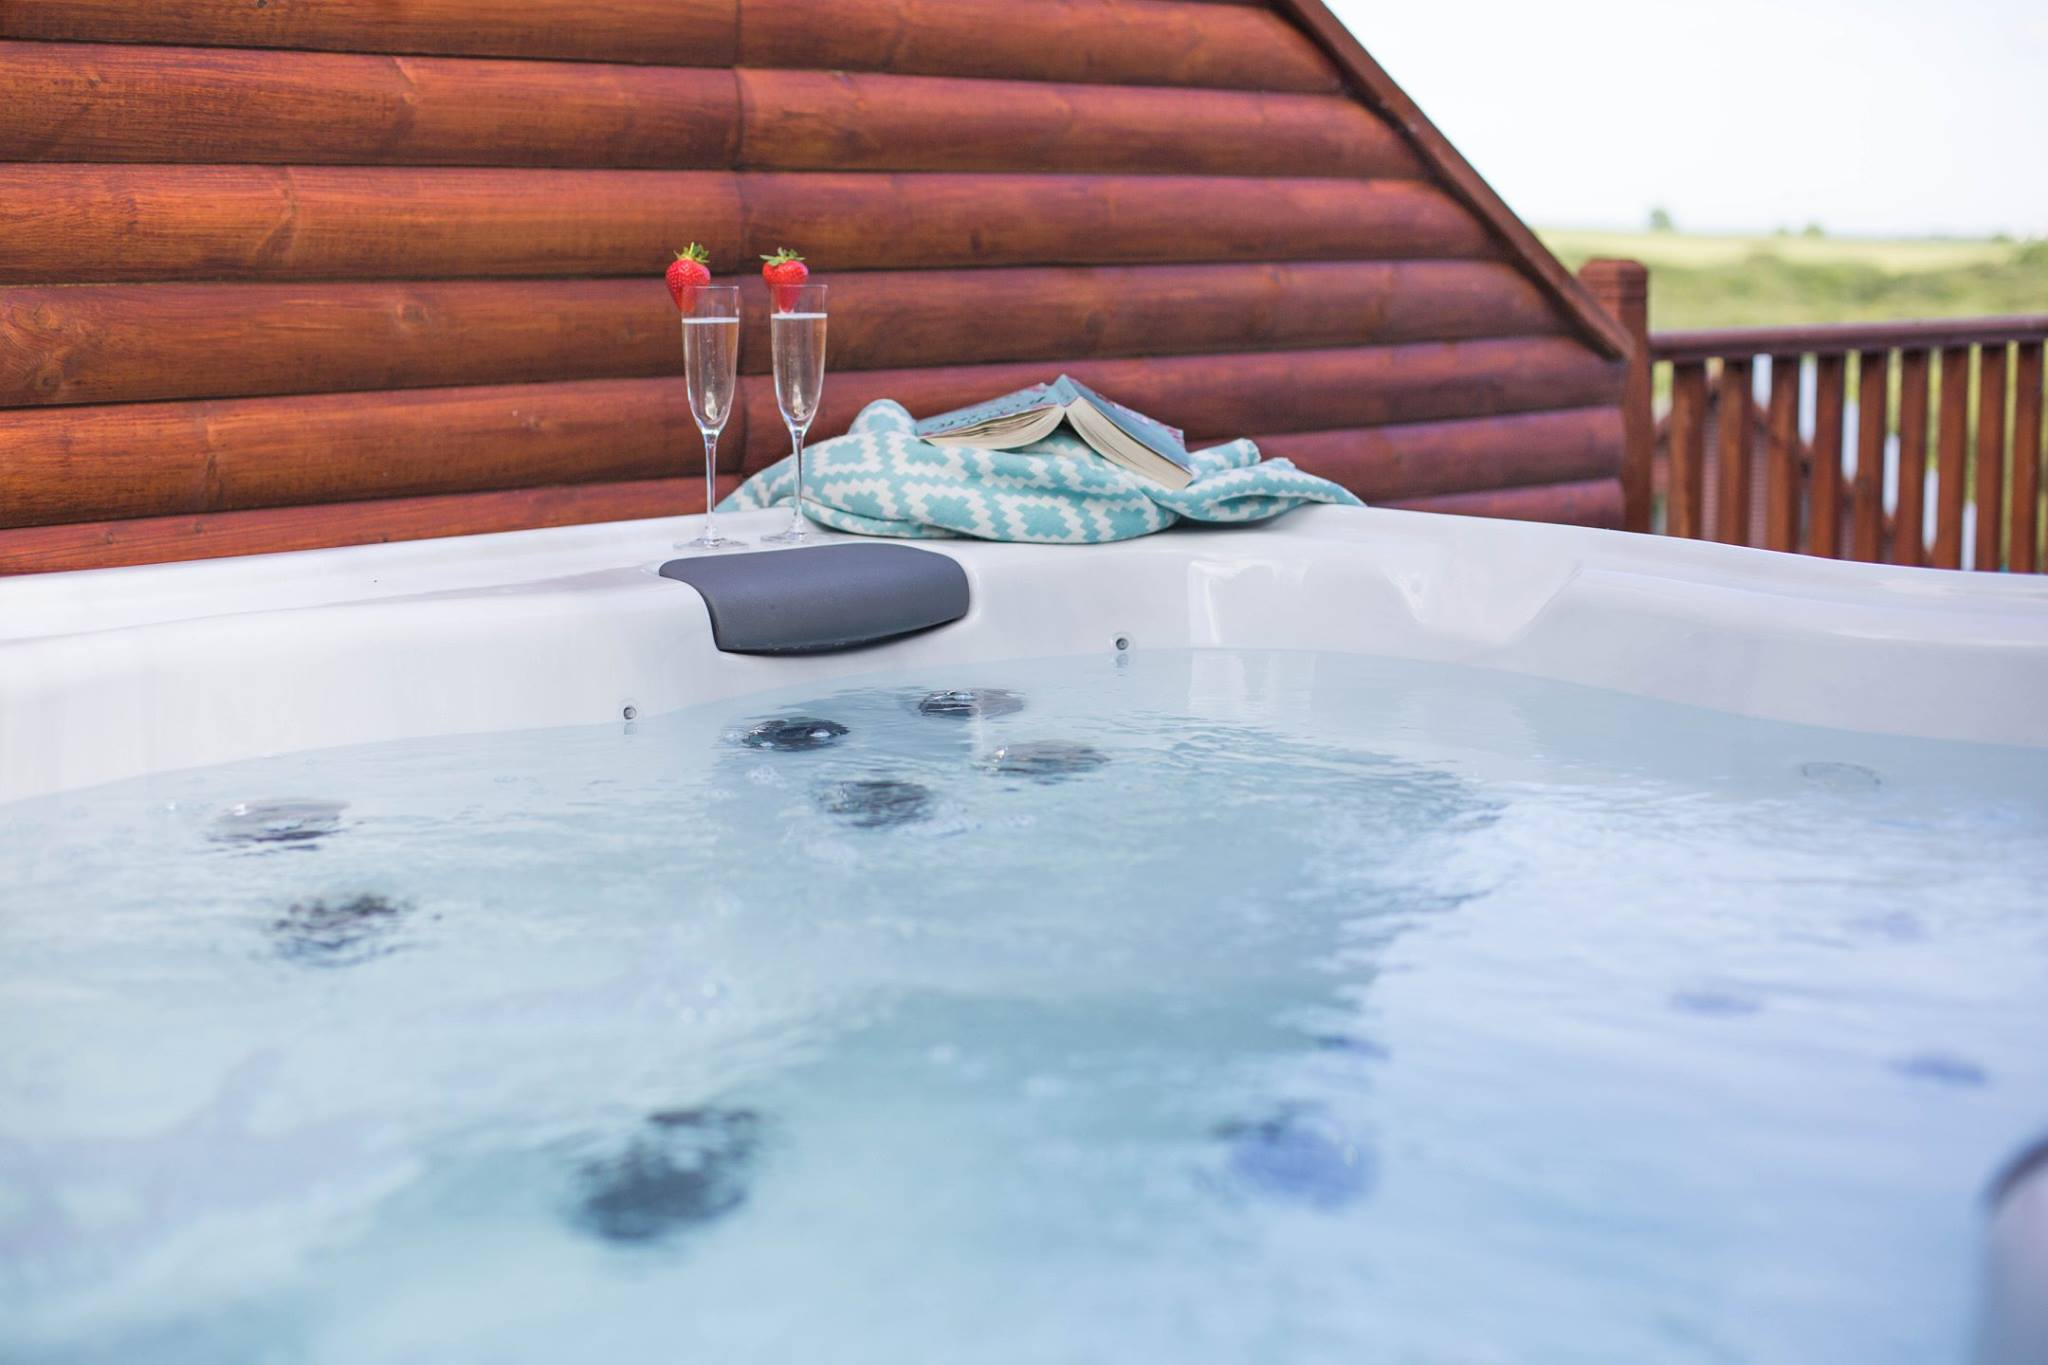 SPA - You'll have the afternoon free to relax and unwind at the spa. We'll be staying in a luxury lodge on a 5 star spa resort, you'll have full access to the spa facilities, including swimming pool, sauna and steam room.Our lodge has a private hot tub on the terrace too, grab a glass of something bubbly and relax